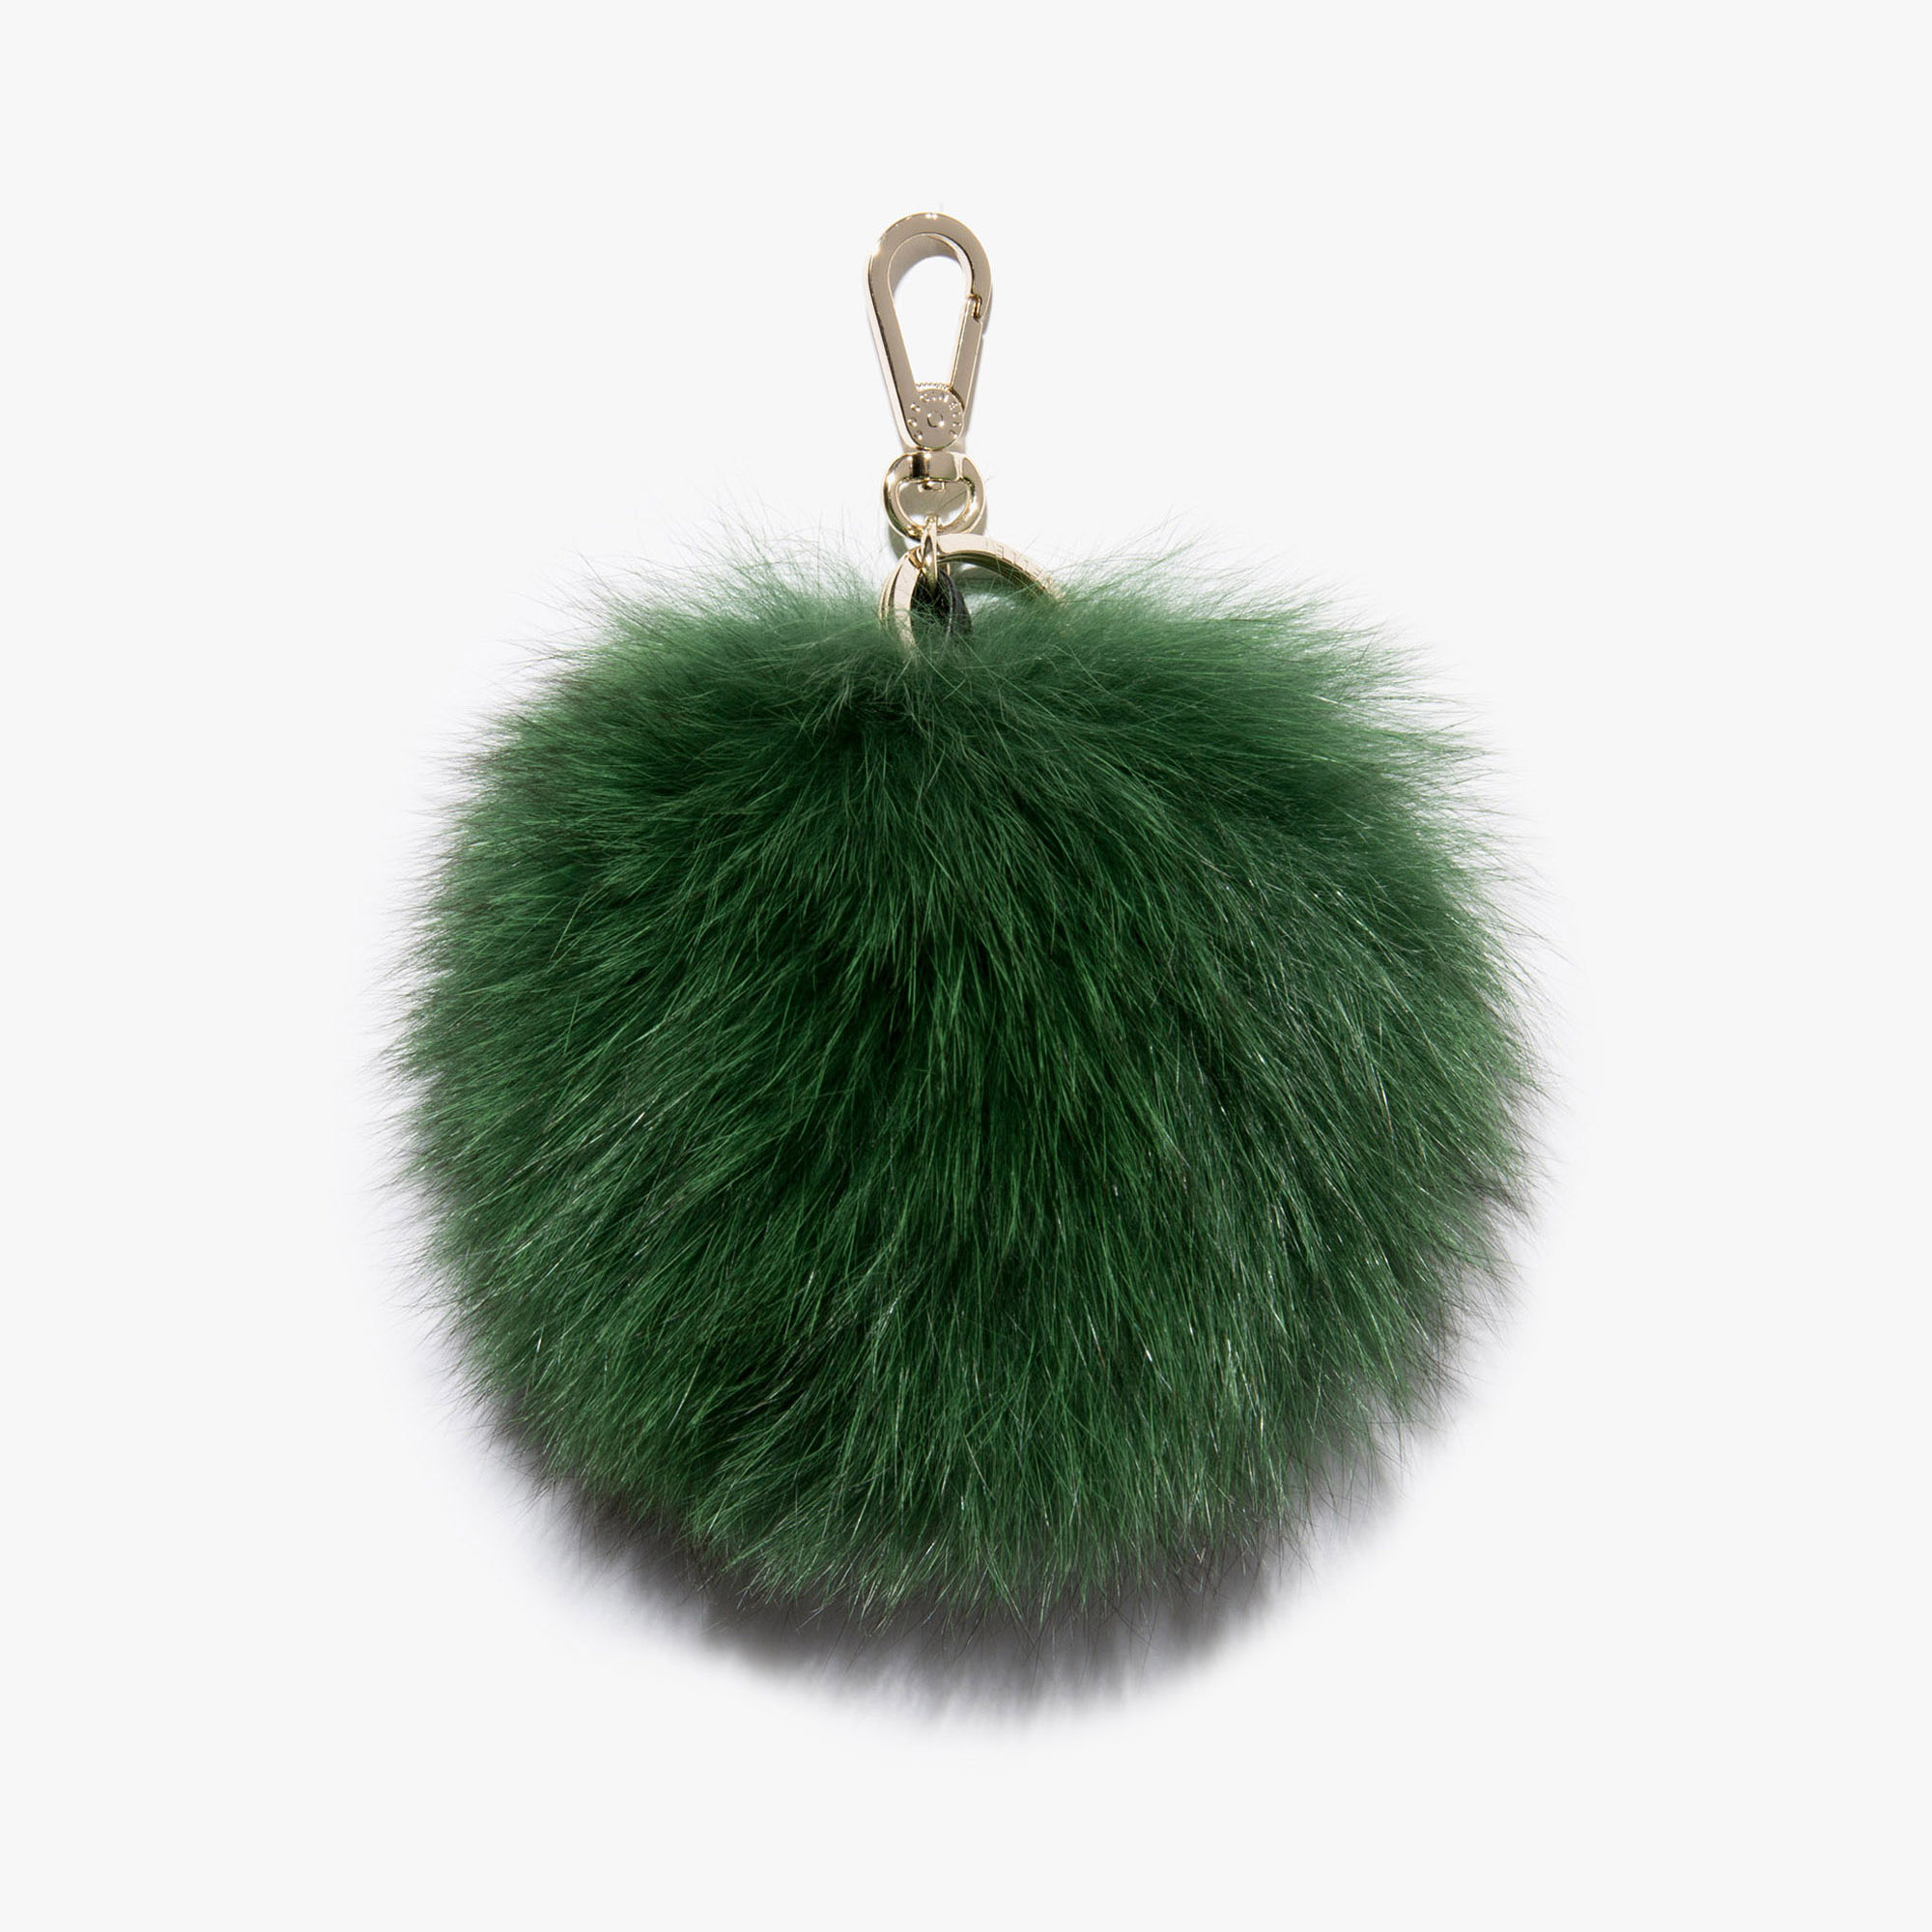 Coccinelle Leather keychain